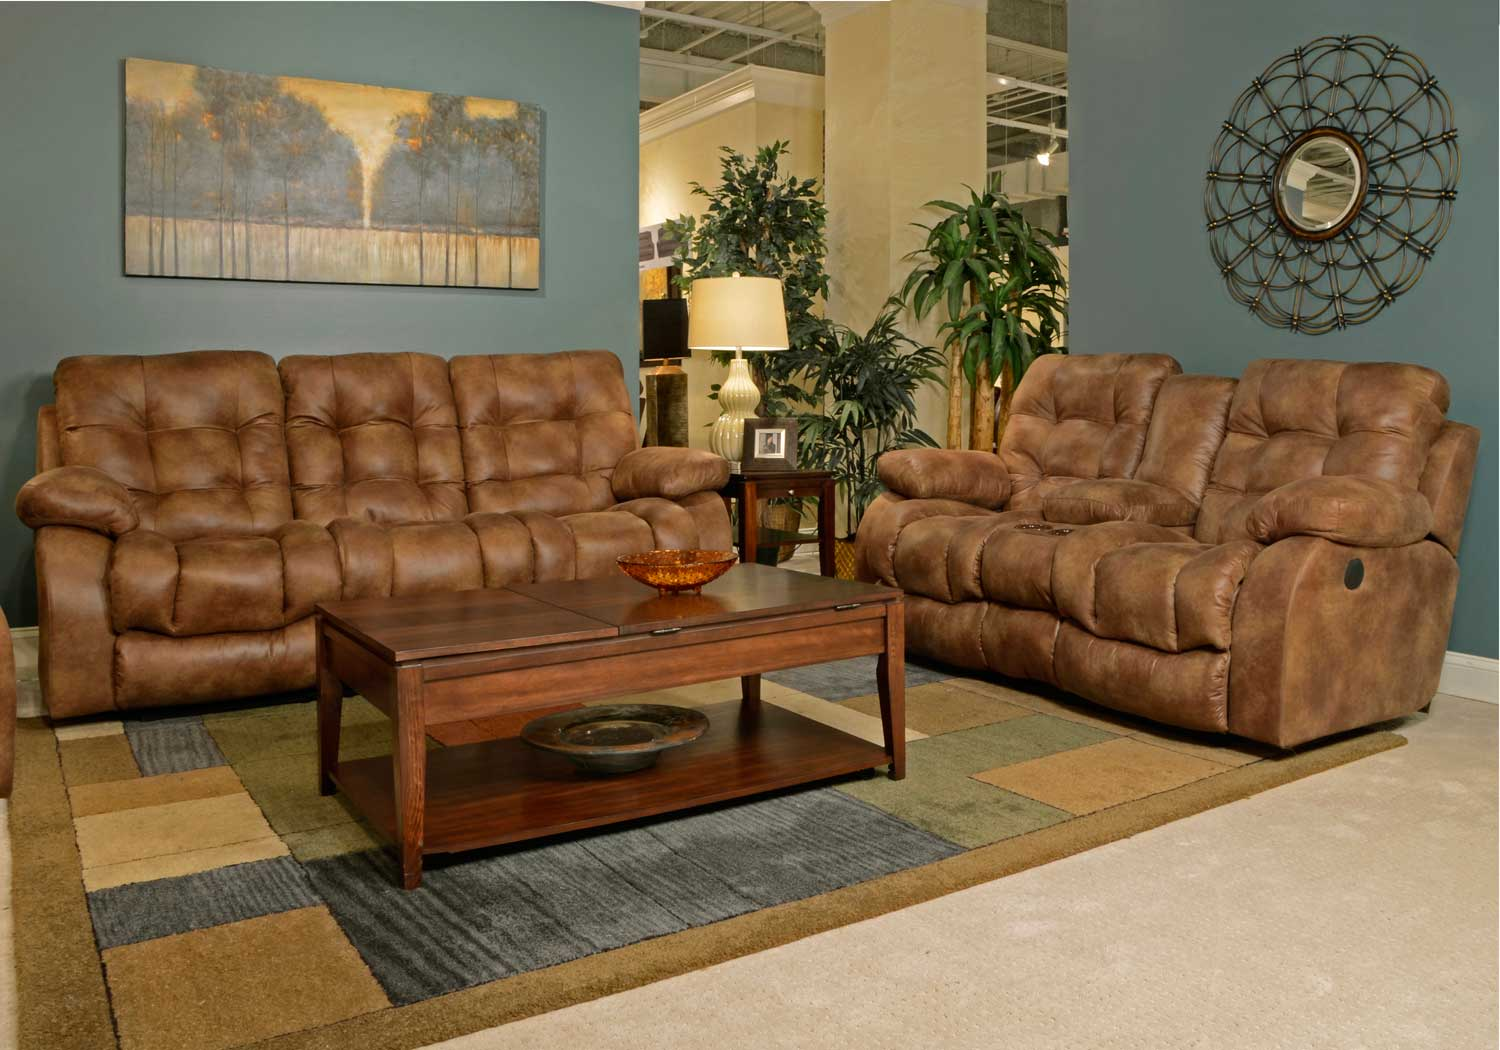 Catnapper Watson Lay Flat Reclining Sofa Set Almond Cn 1521 Sofa Set Almond At